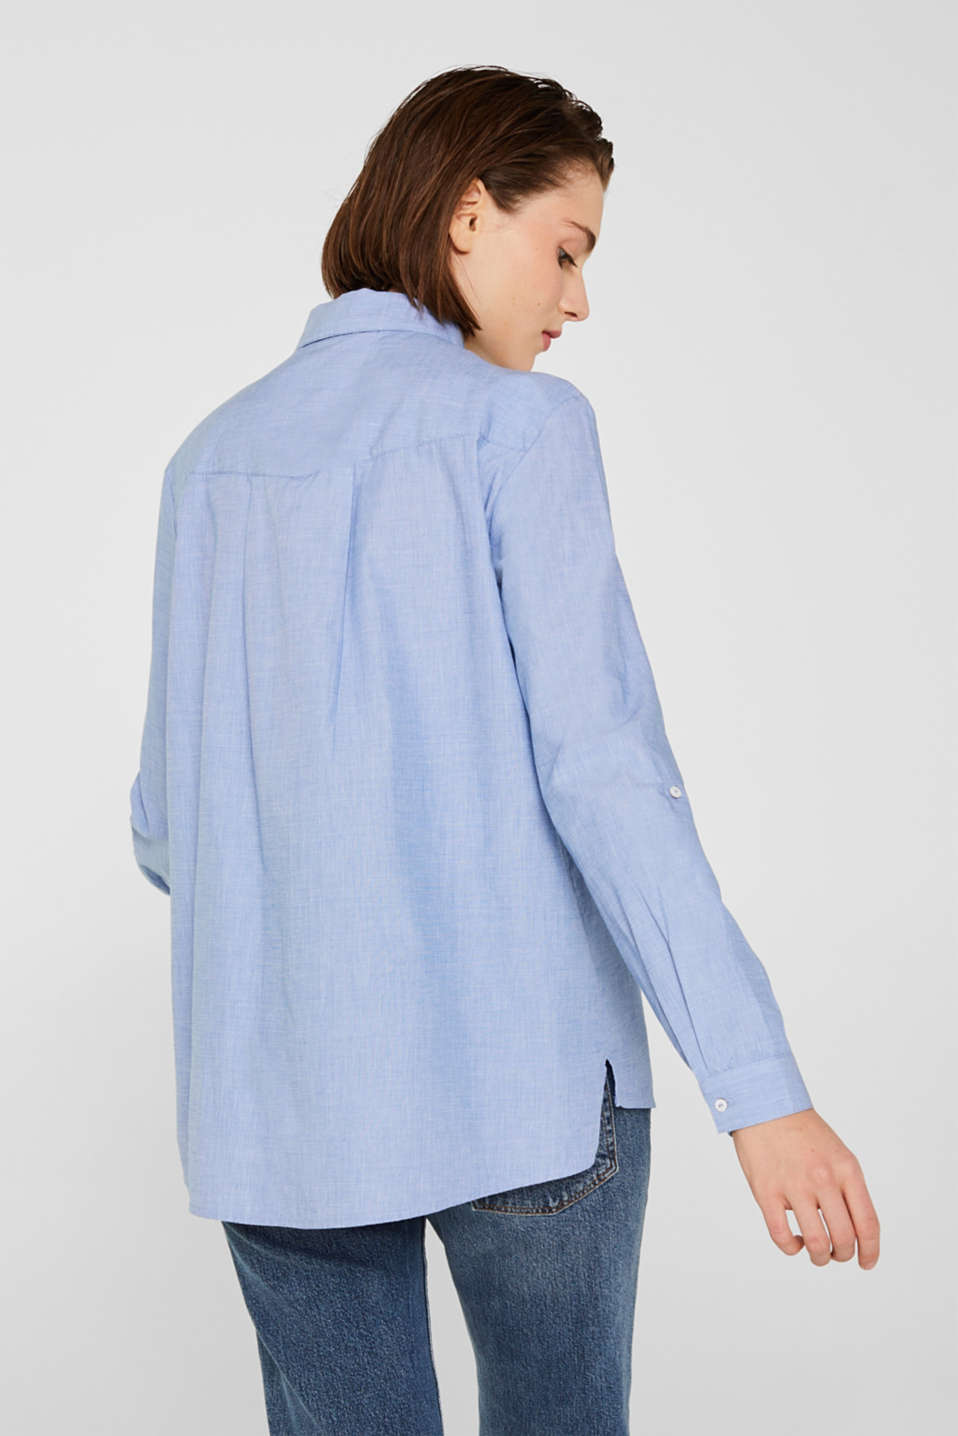 Blouses woven, LIGHT BLUE, detail image number 3